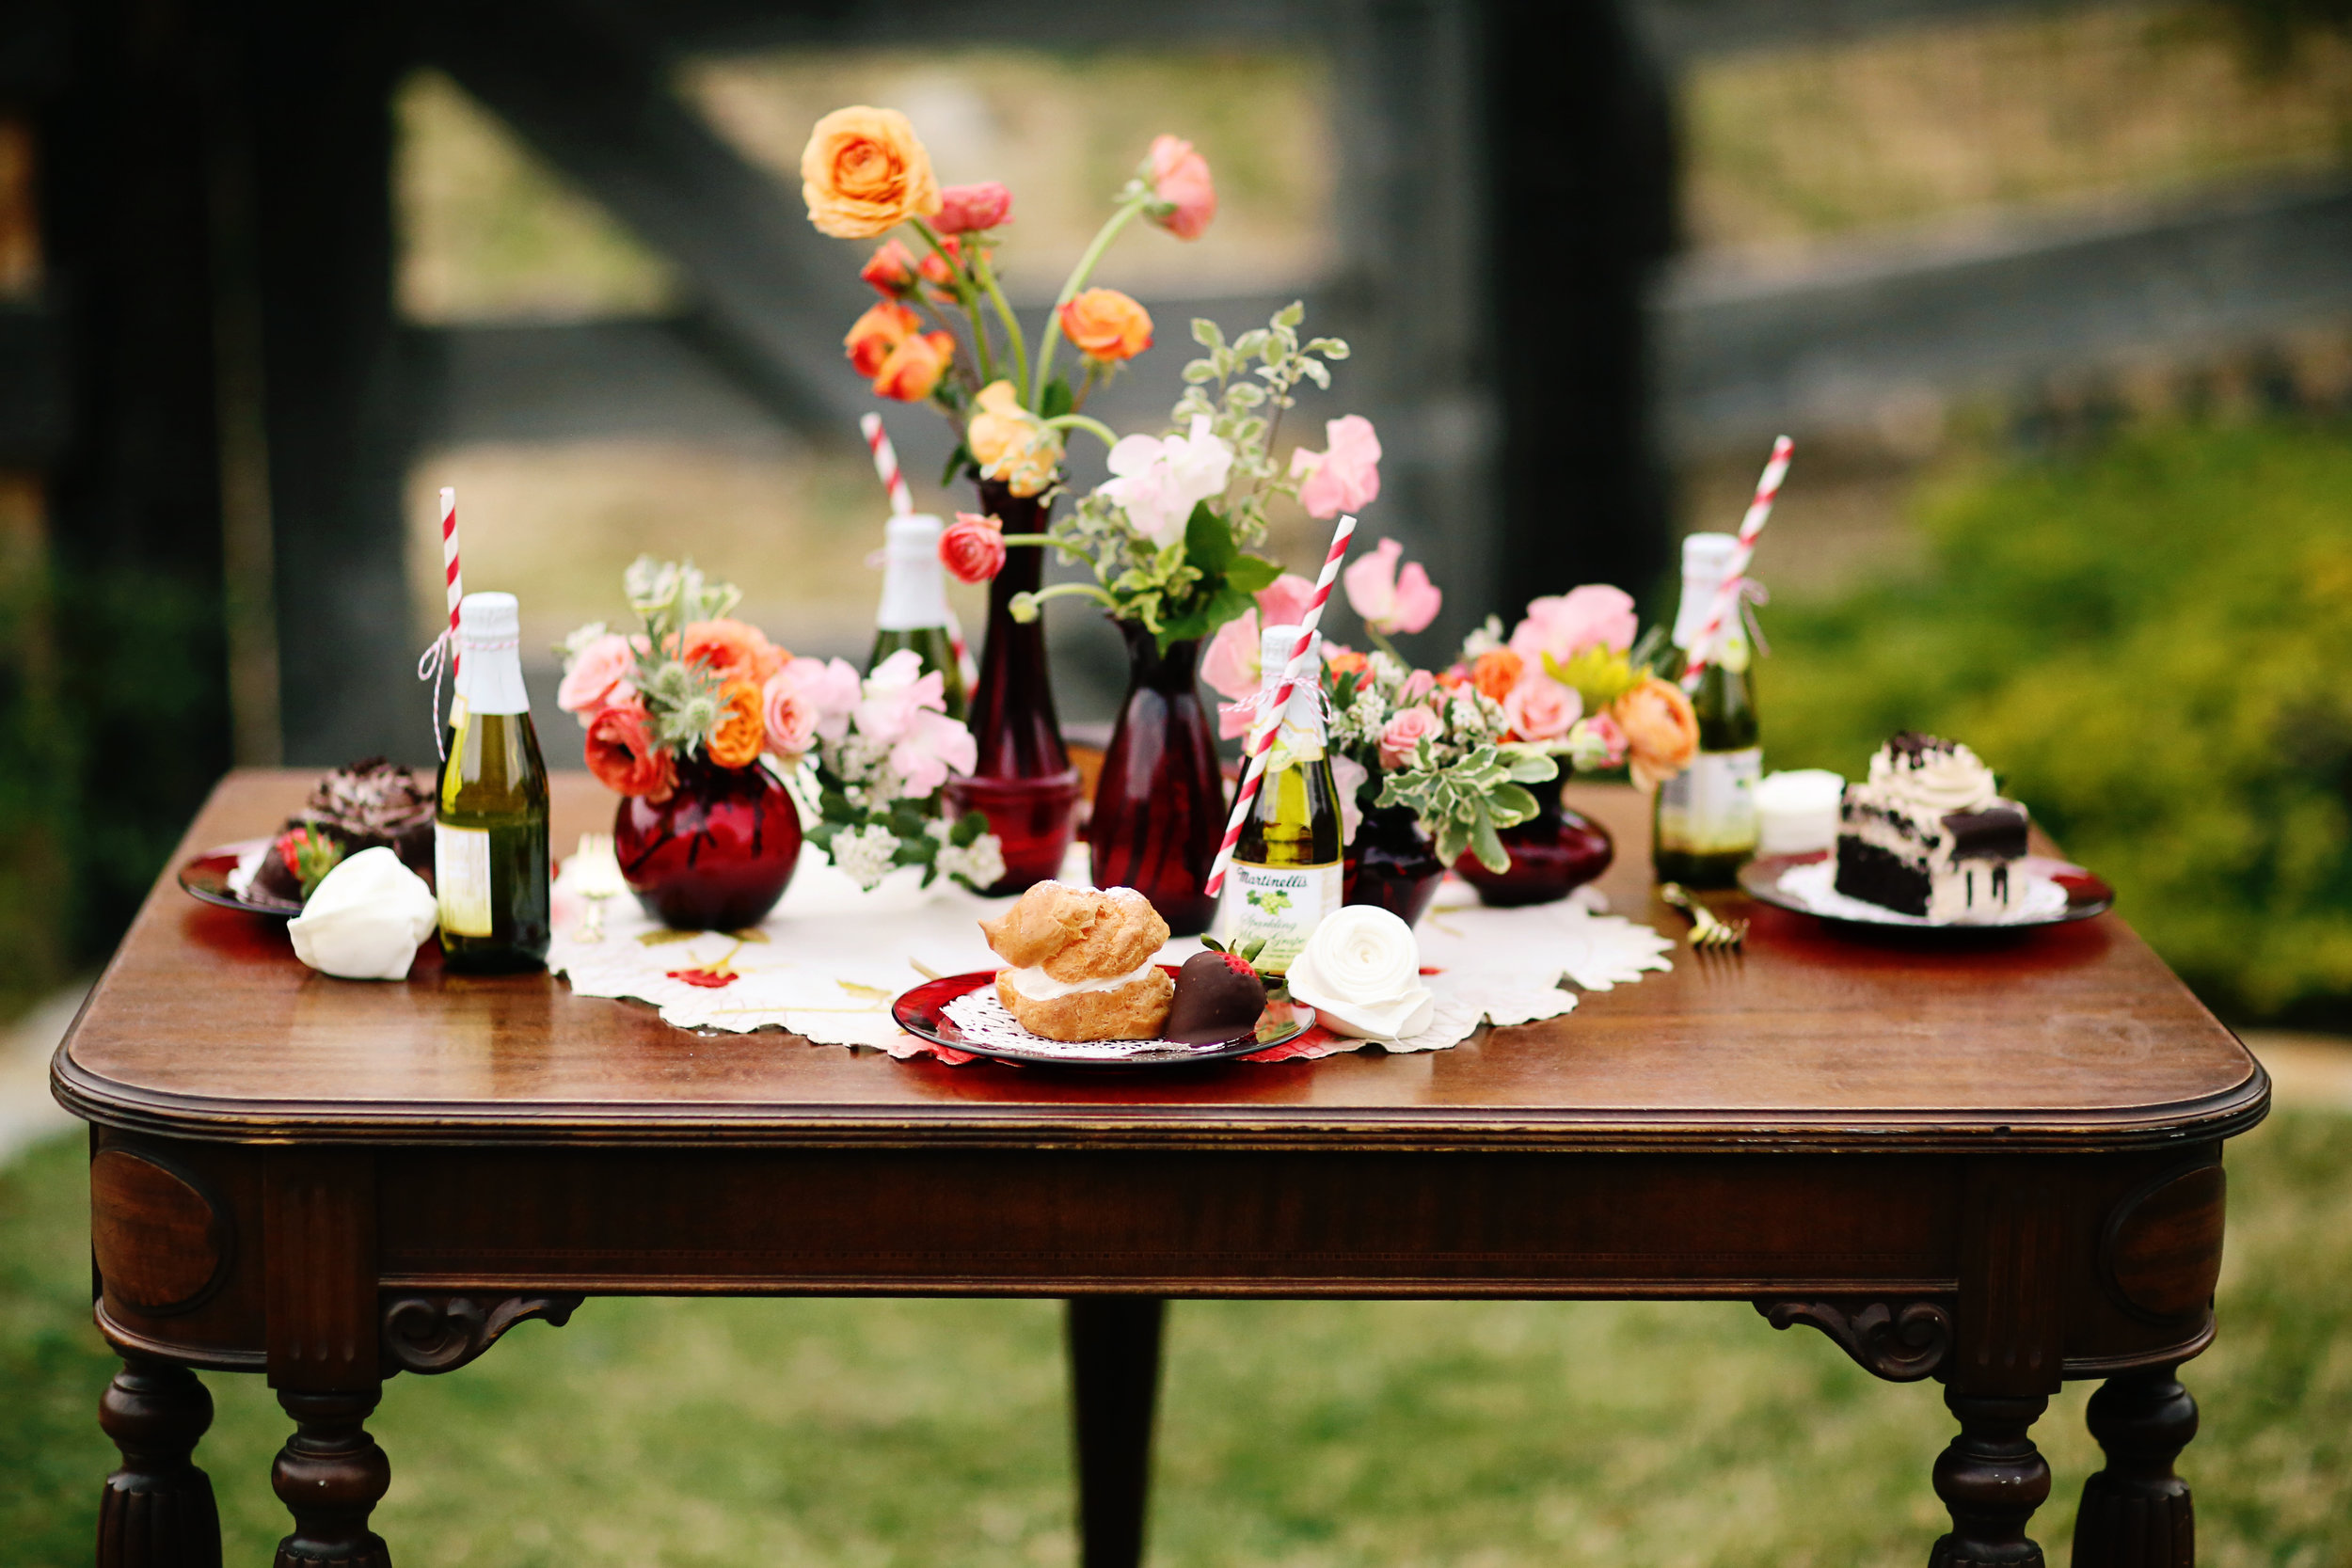 A vintage table topped with ruby glass details. Ruby glass dessert plates with assorted desserts. Ruby glass vases with colorful flowers. All for rent in Murrieta.